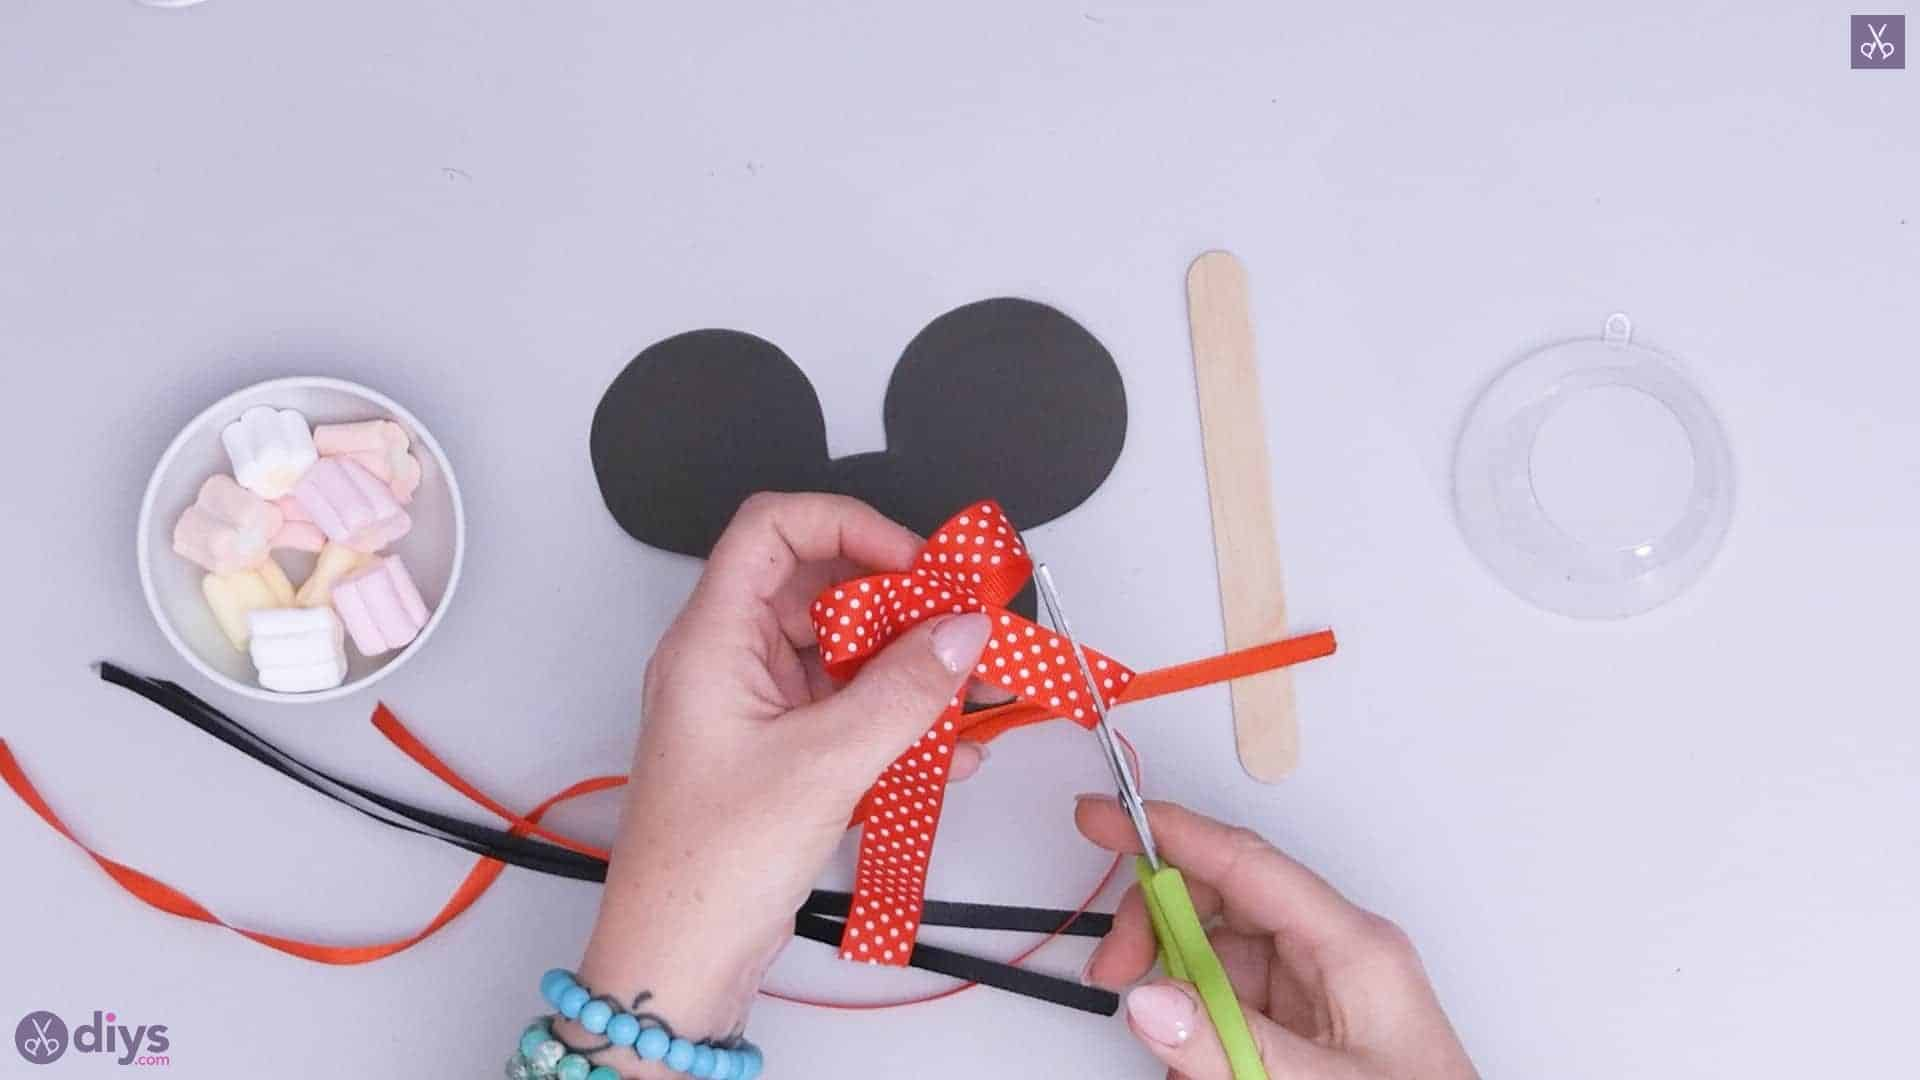 Diy minnie mouse candy holder step 3c